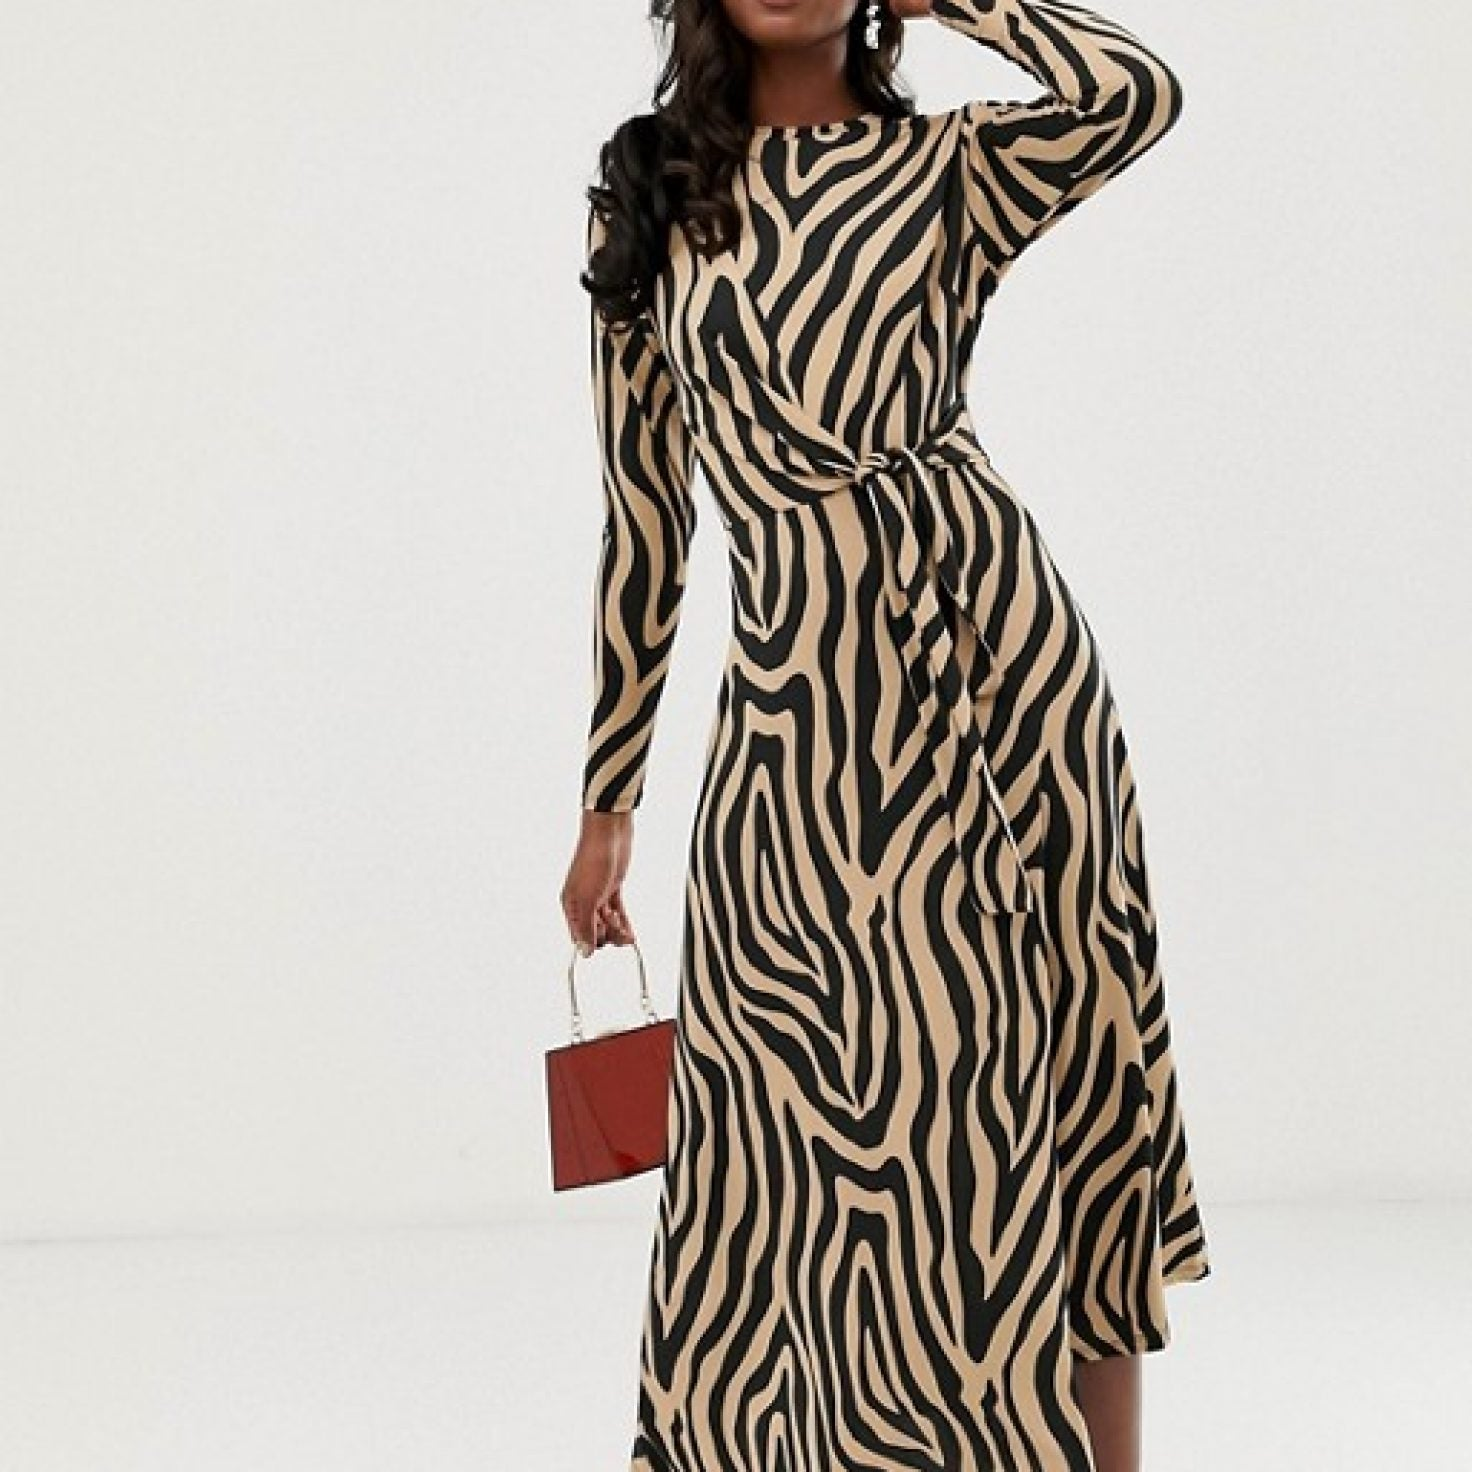 Get Wild This Spring With These Fabulous Animal Print Picks Under $100